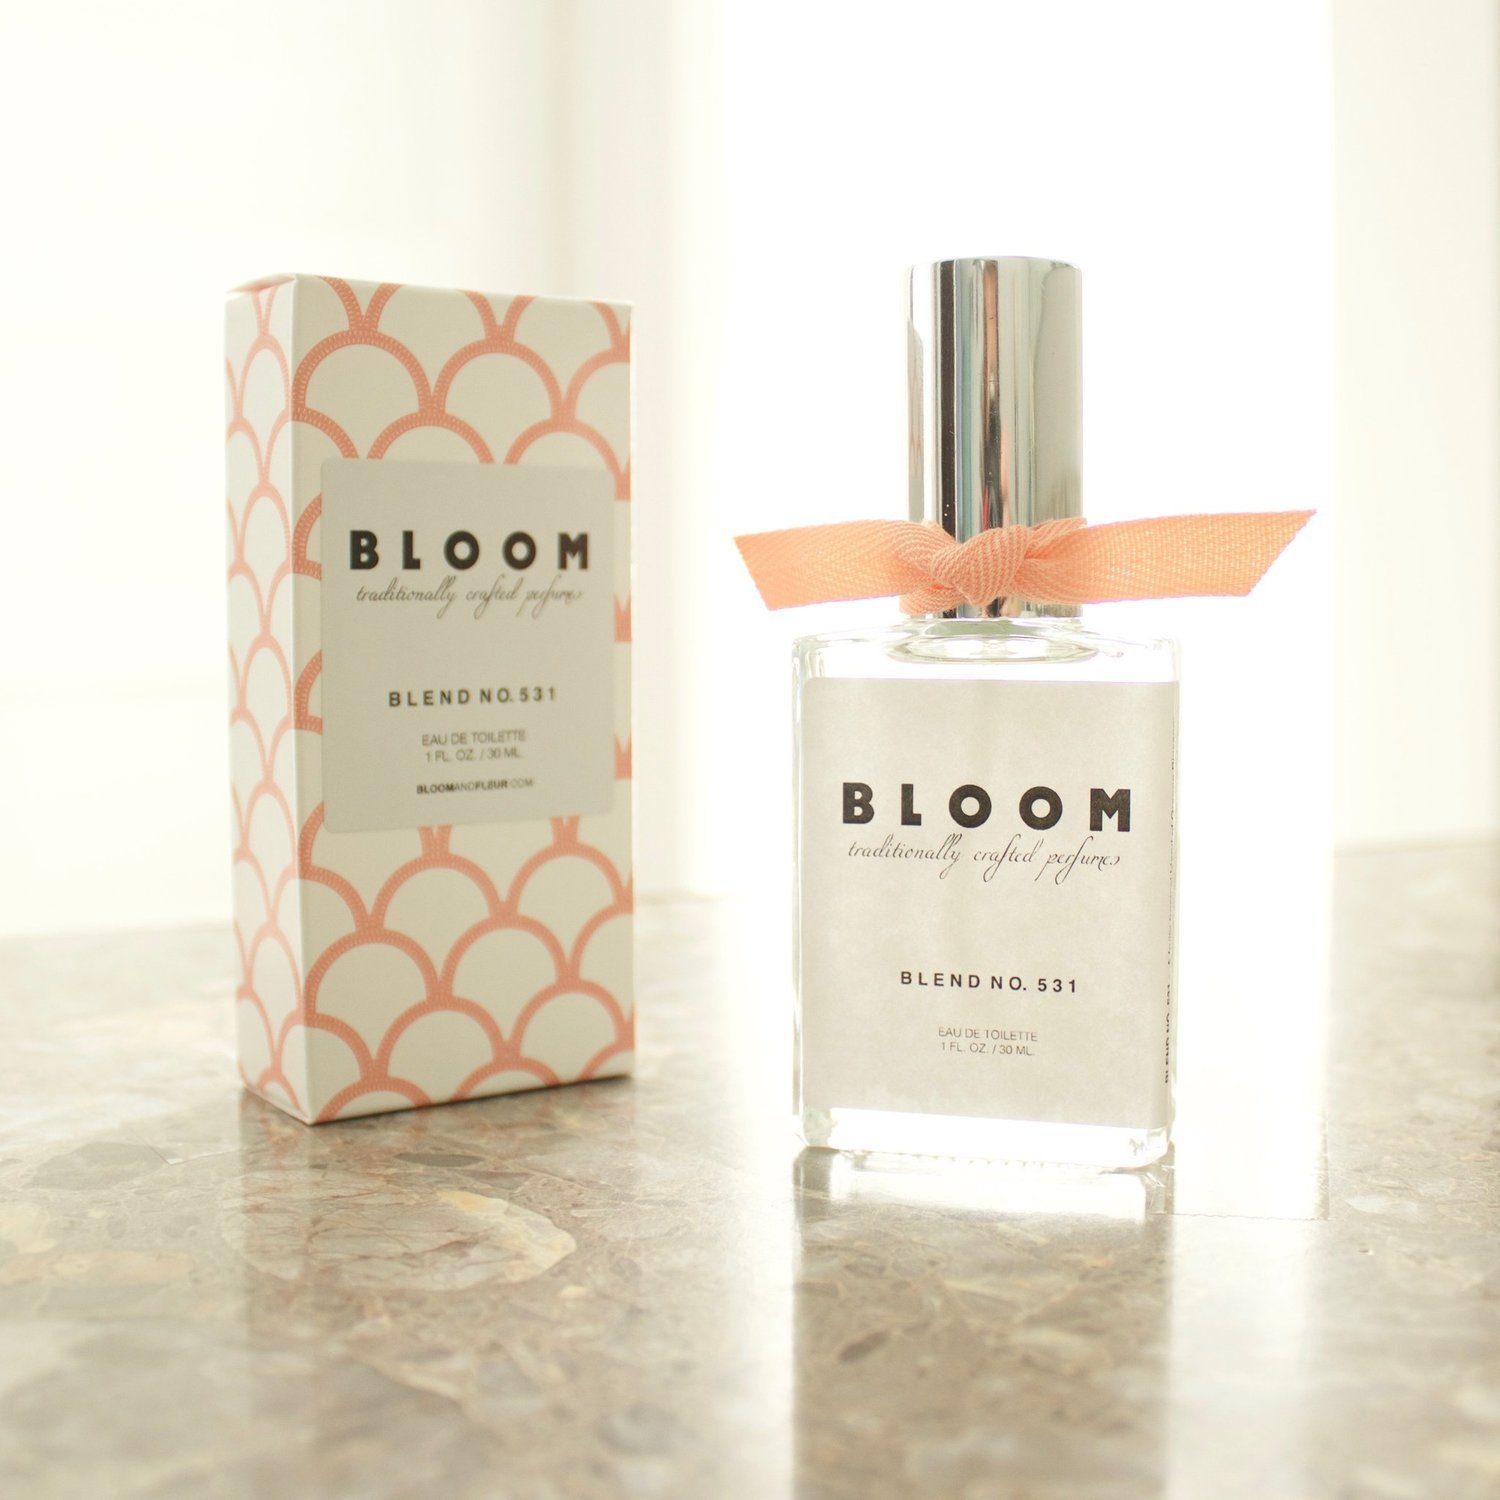 Bloom Perfume - Blend no. 531